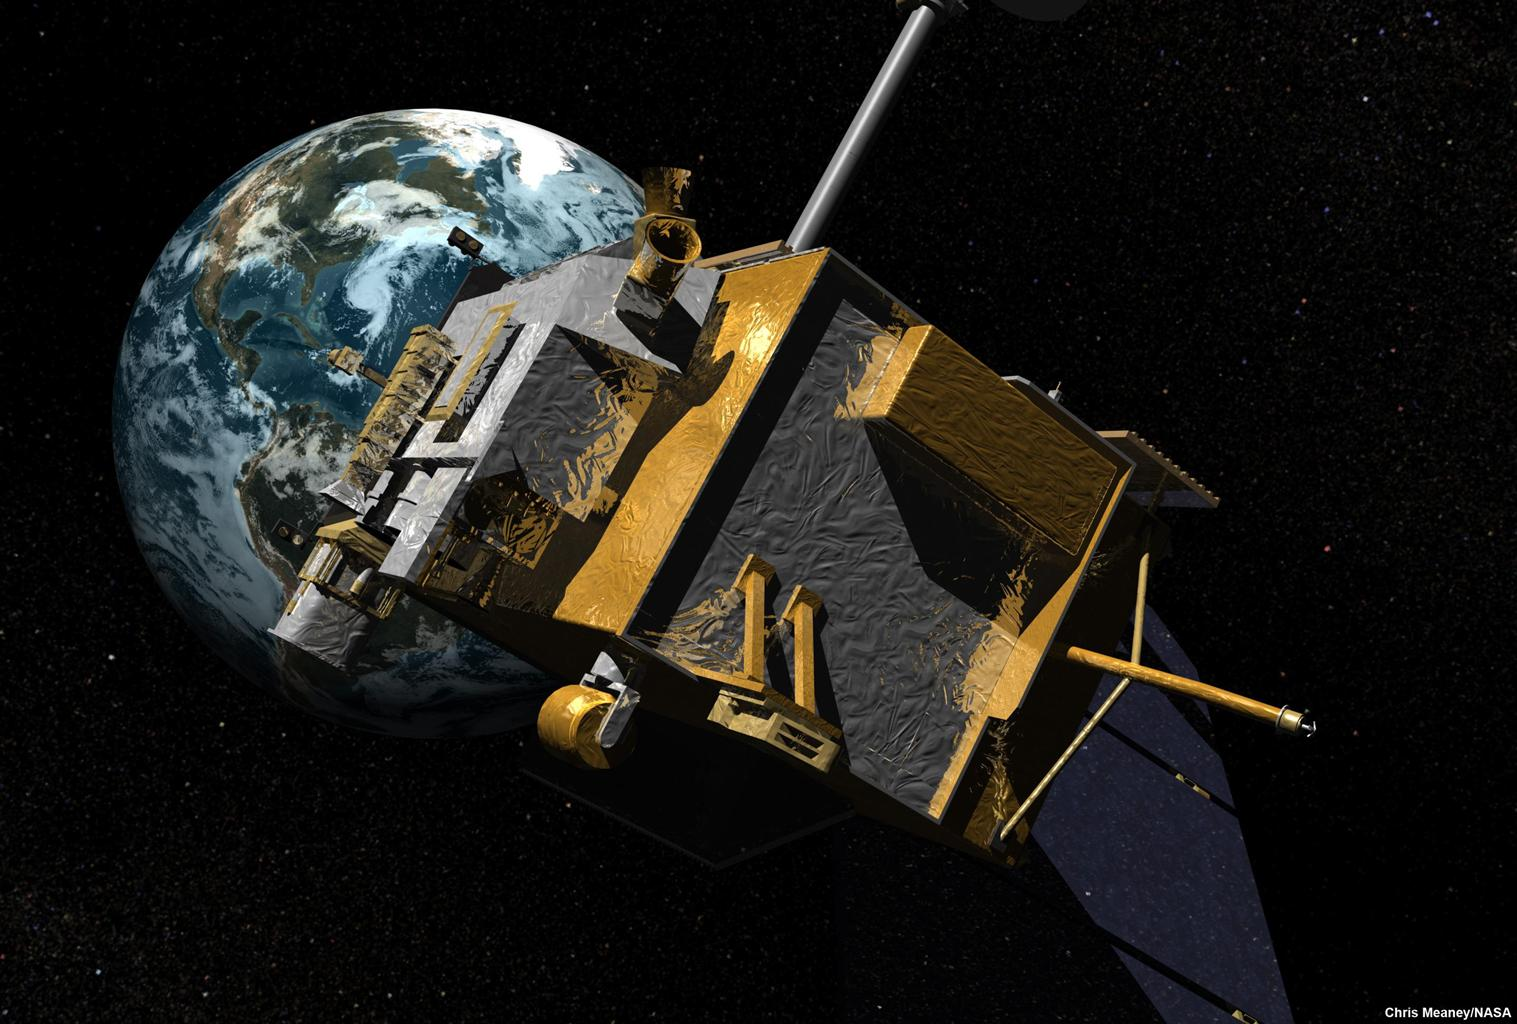 NASA is scheduled to launch the Lunar Reconnaissance Orbiter, an unmanned mission to comprehensively map the entire moon, on June 18, 2009.